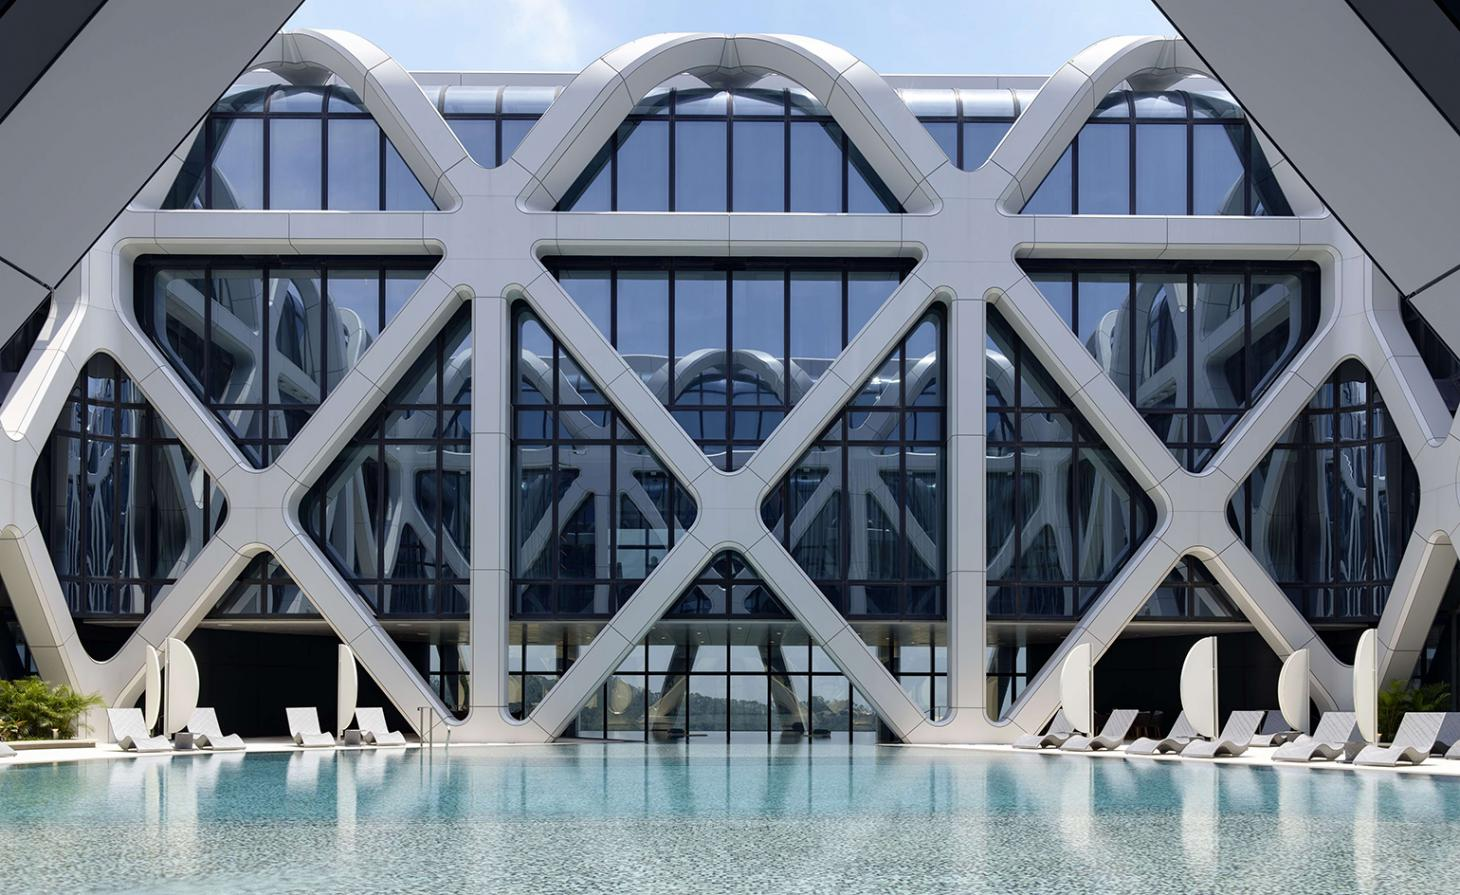 Swimming pool at Zaha Hadid Architects' Morpheus hotel, Macau, China